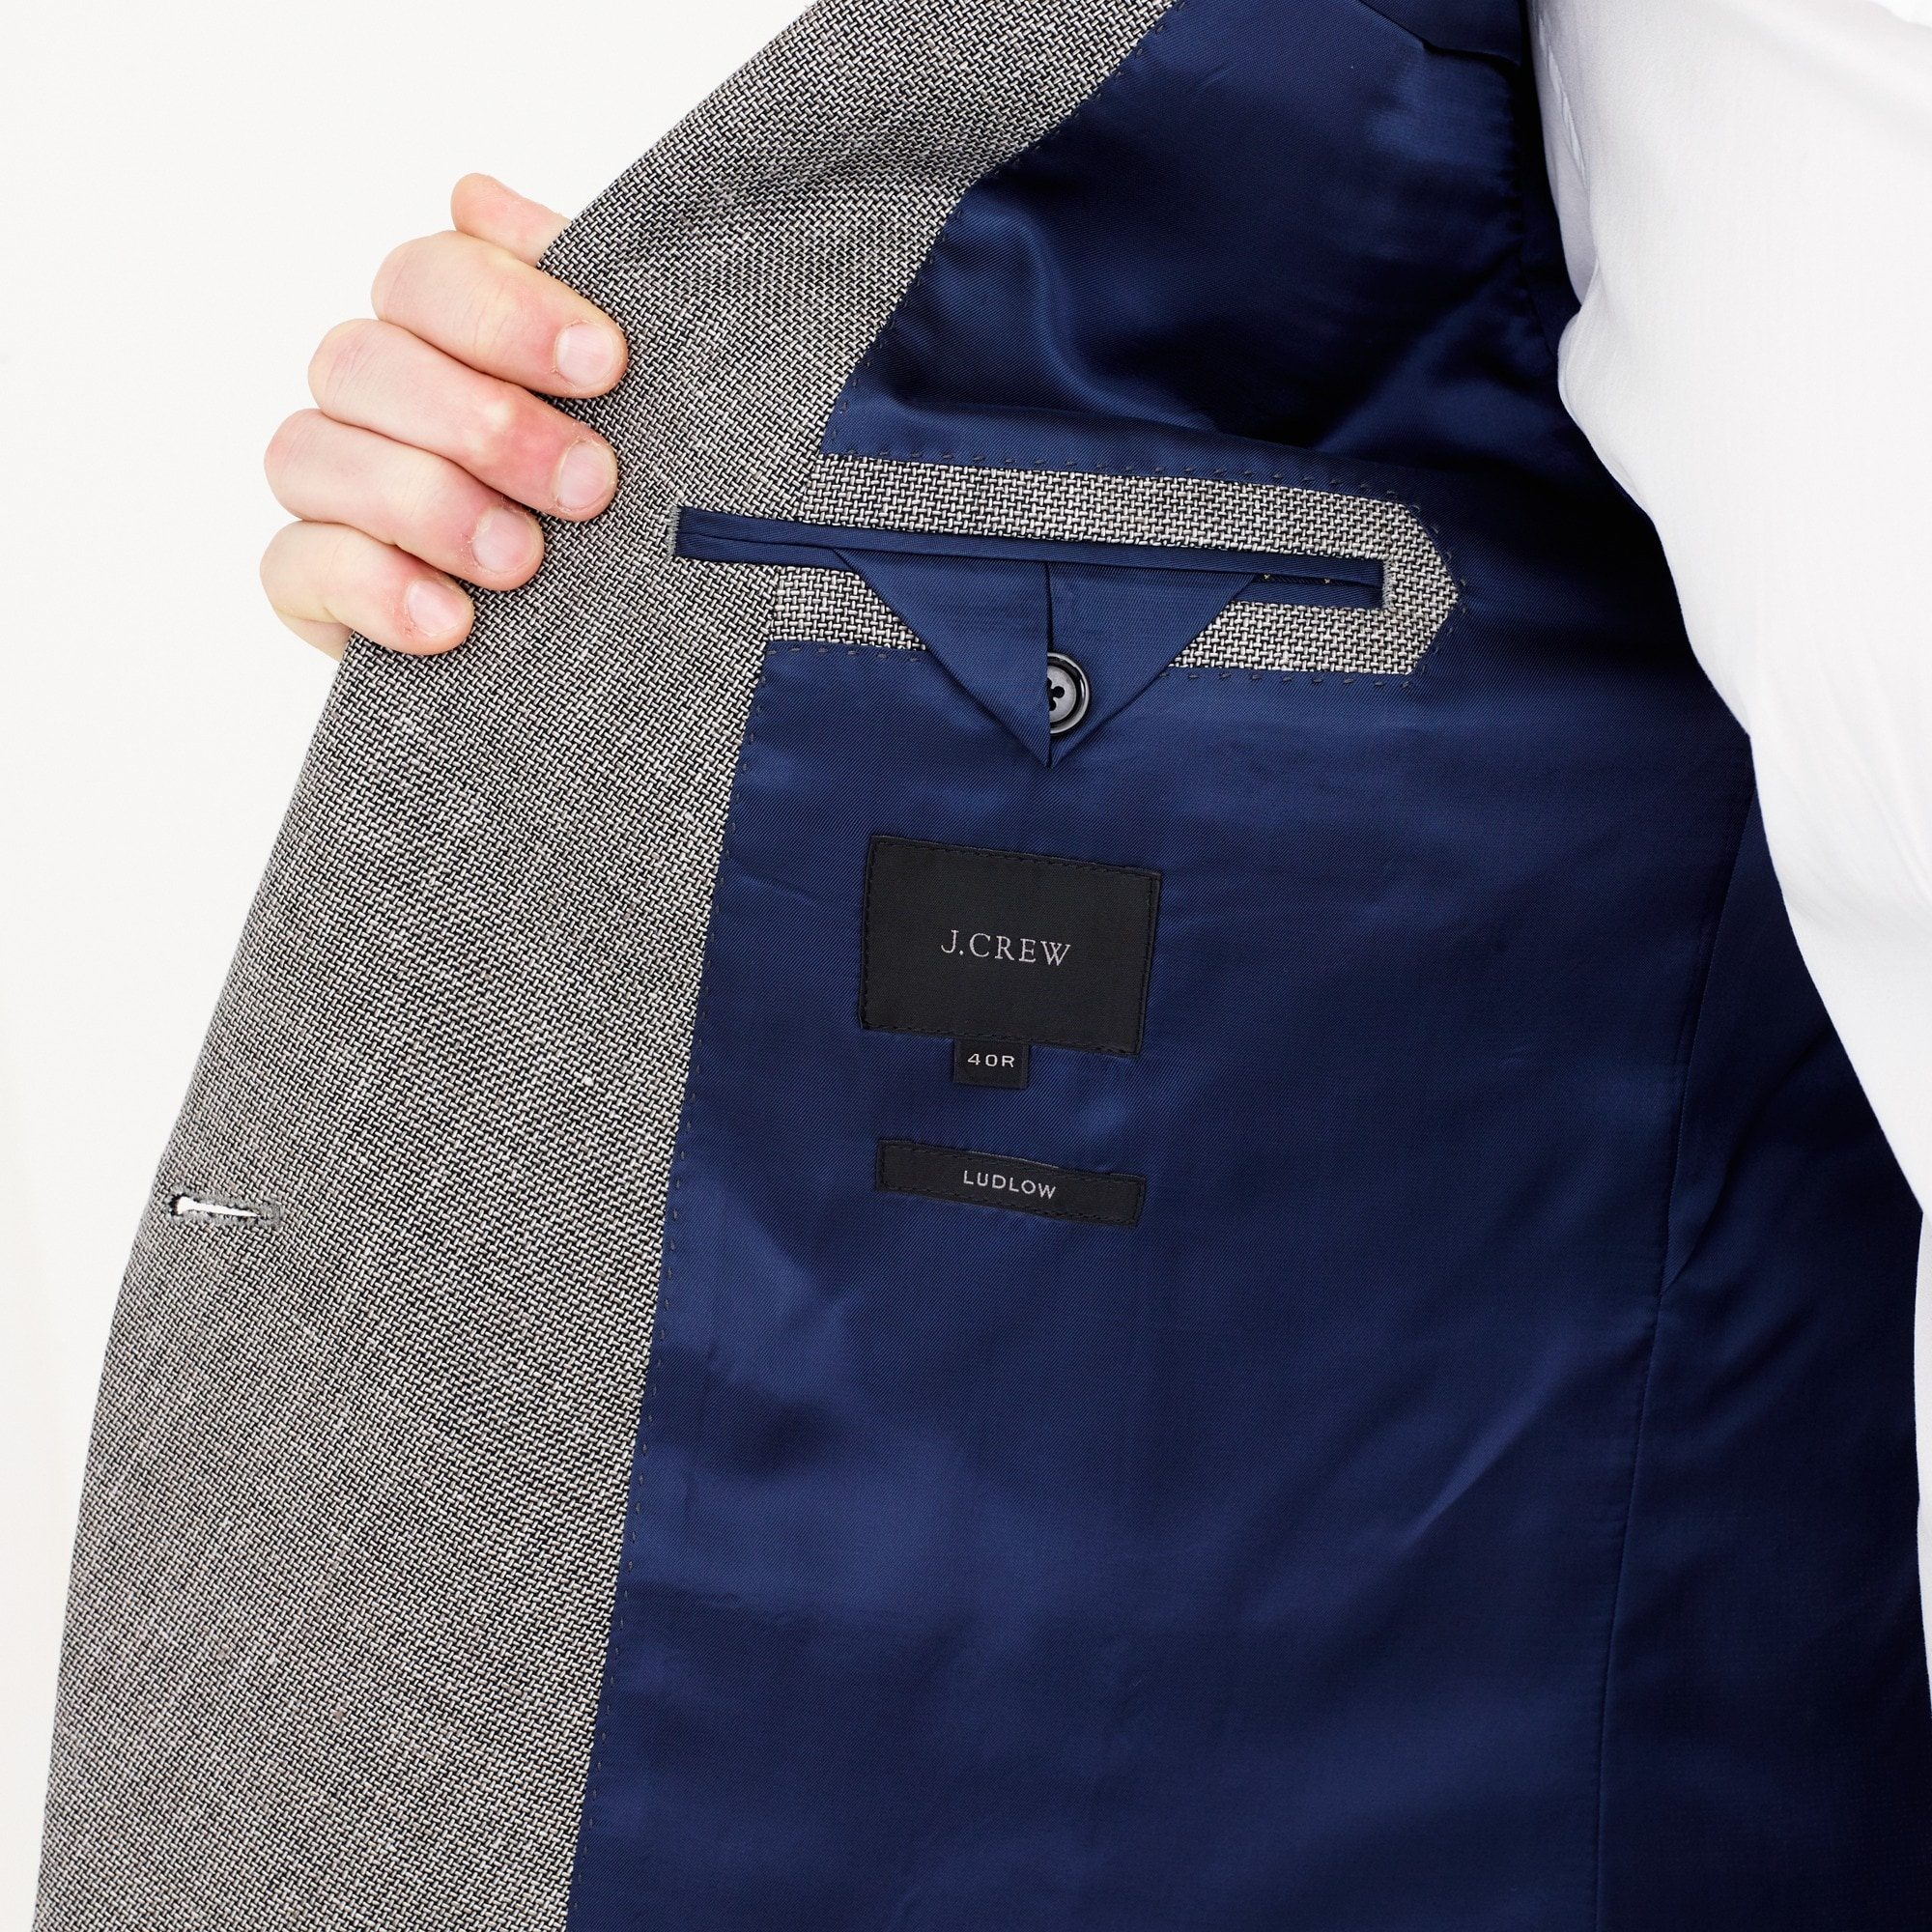 Ludlow dinner jacket in Italian linen-cotton